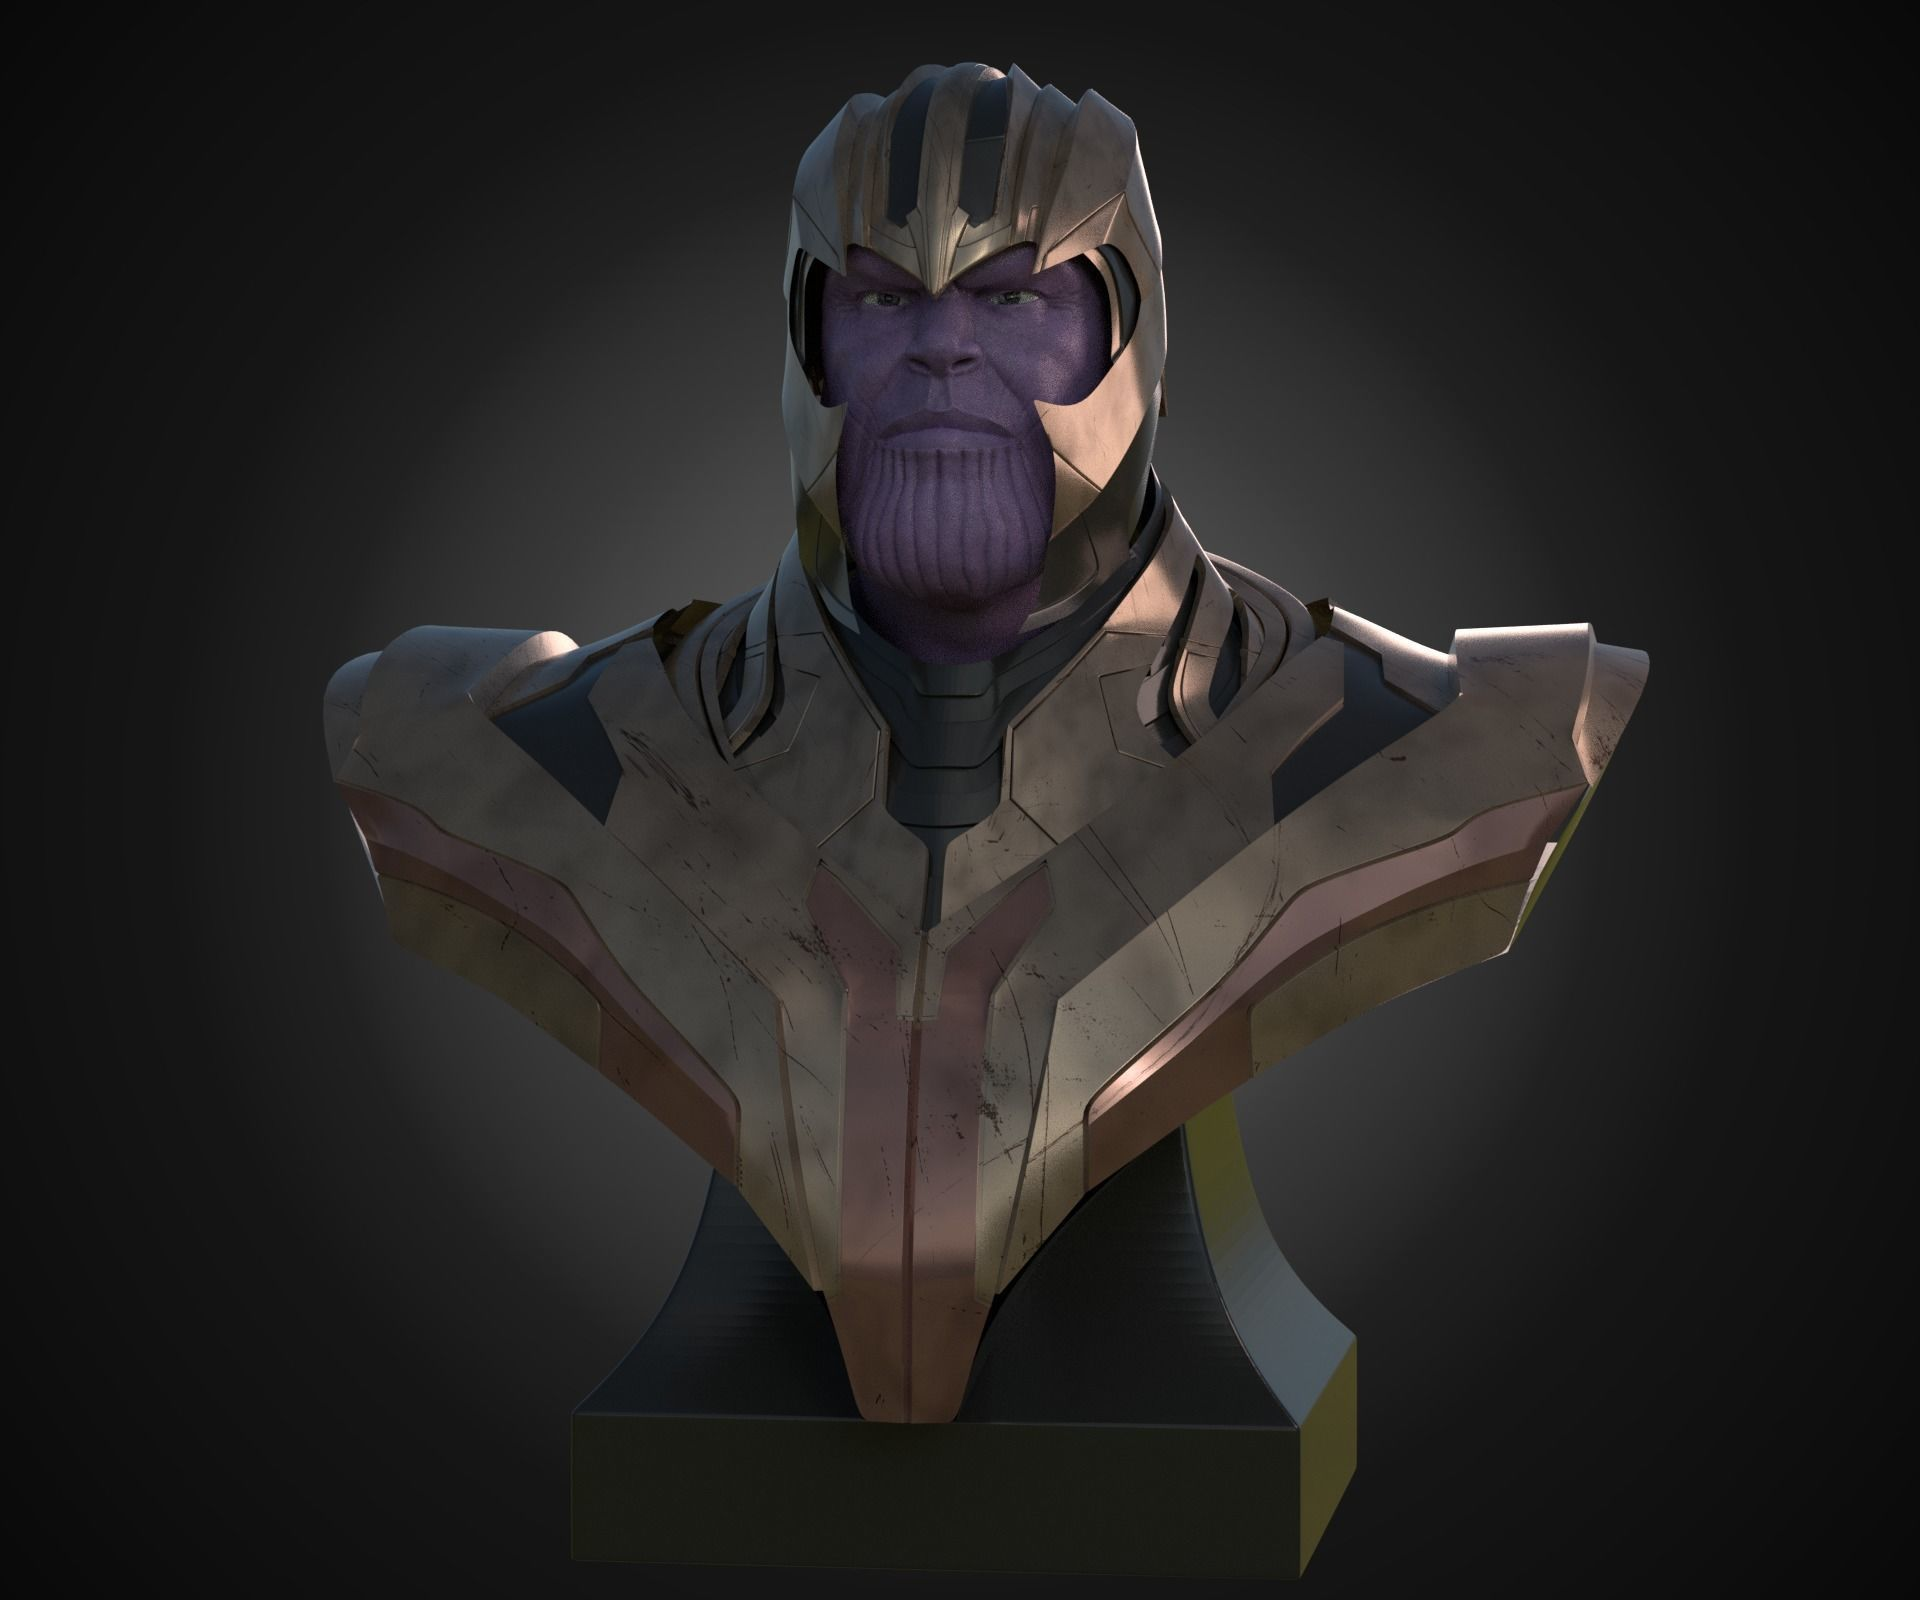 Bust of Thanos